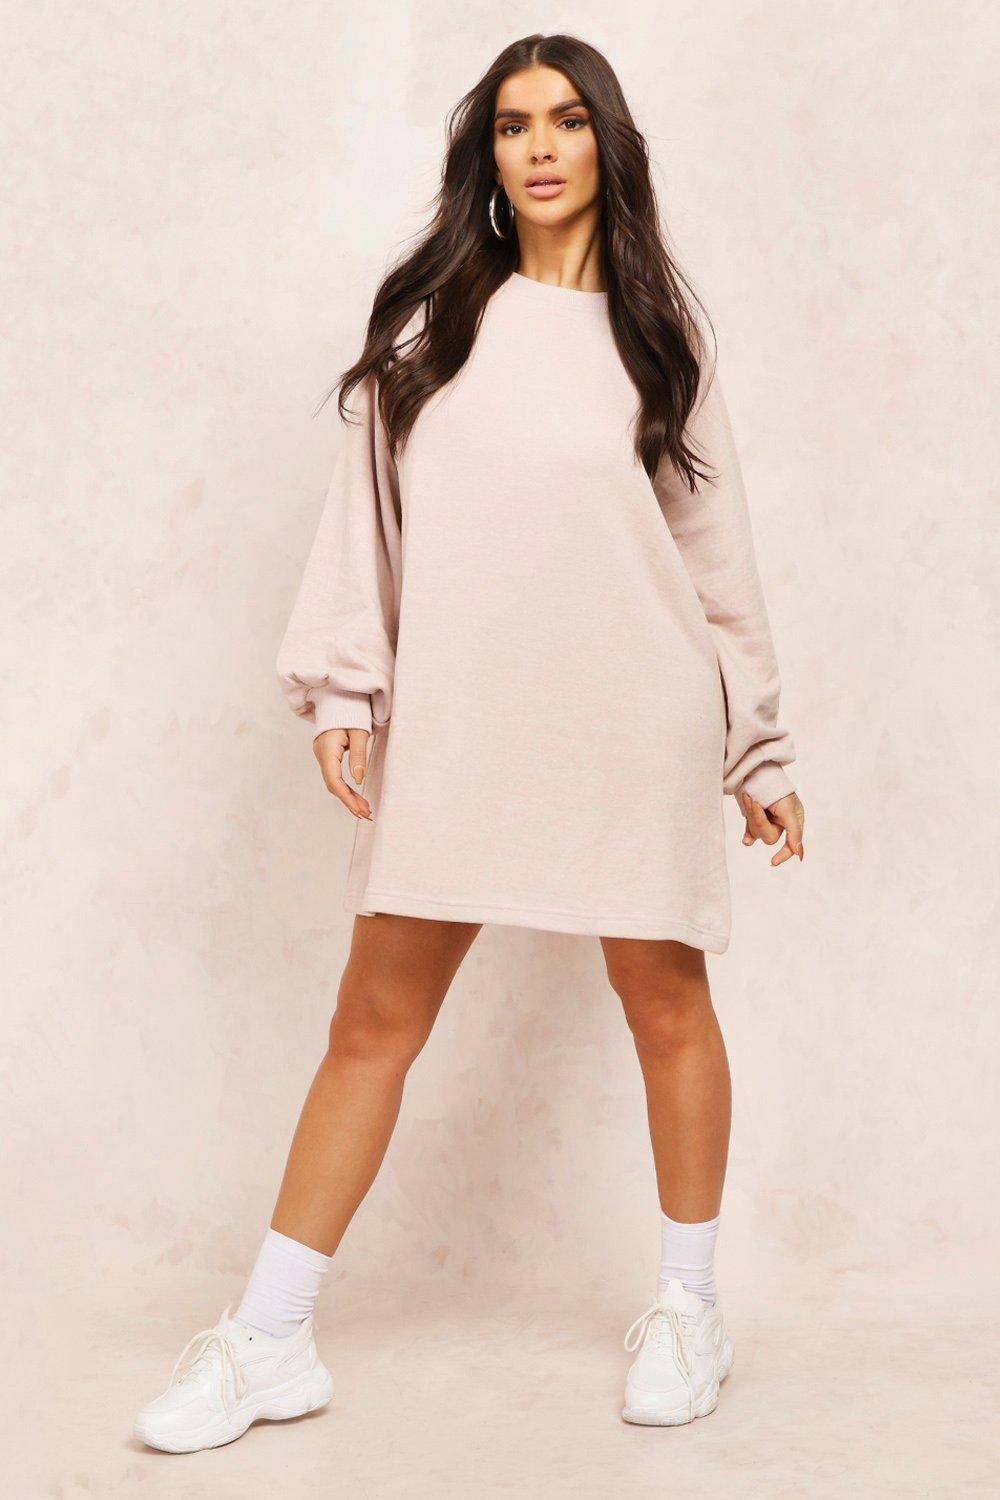 boohoo Womens Mix & Match Edition Oversized Sweat Dress - Beige - M, Beige